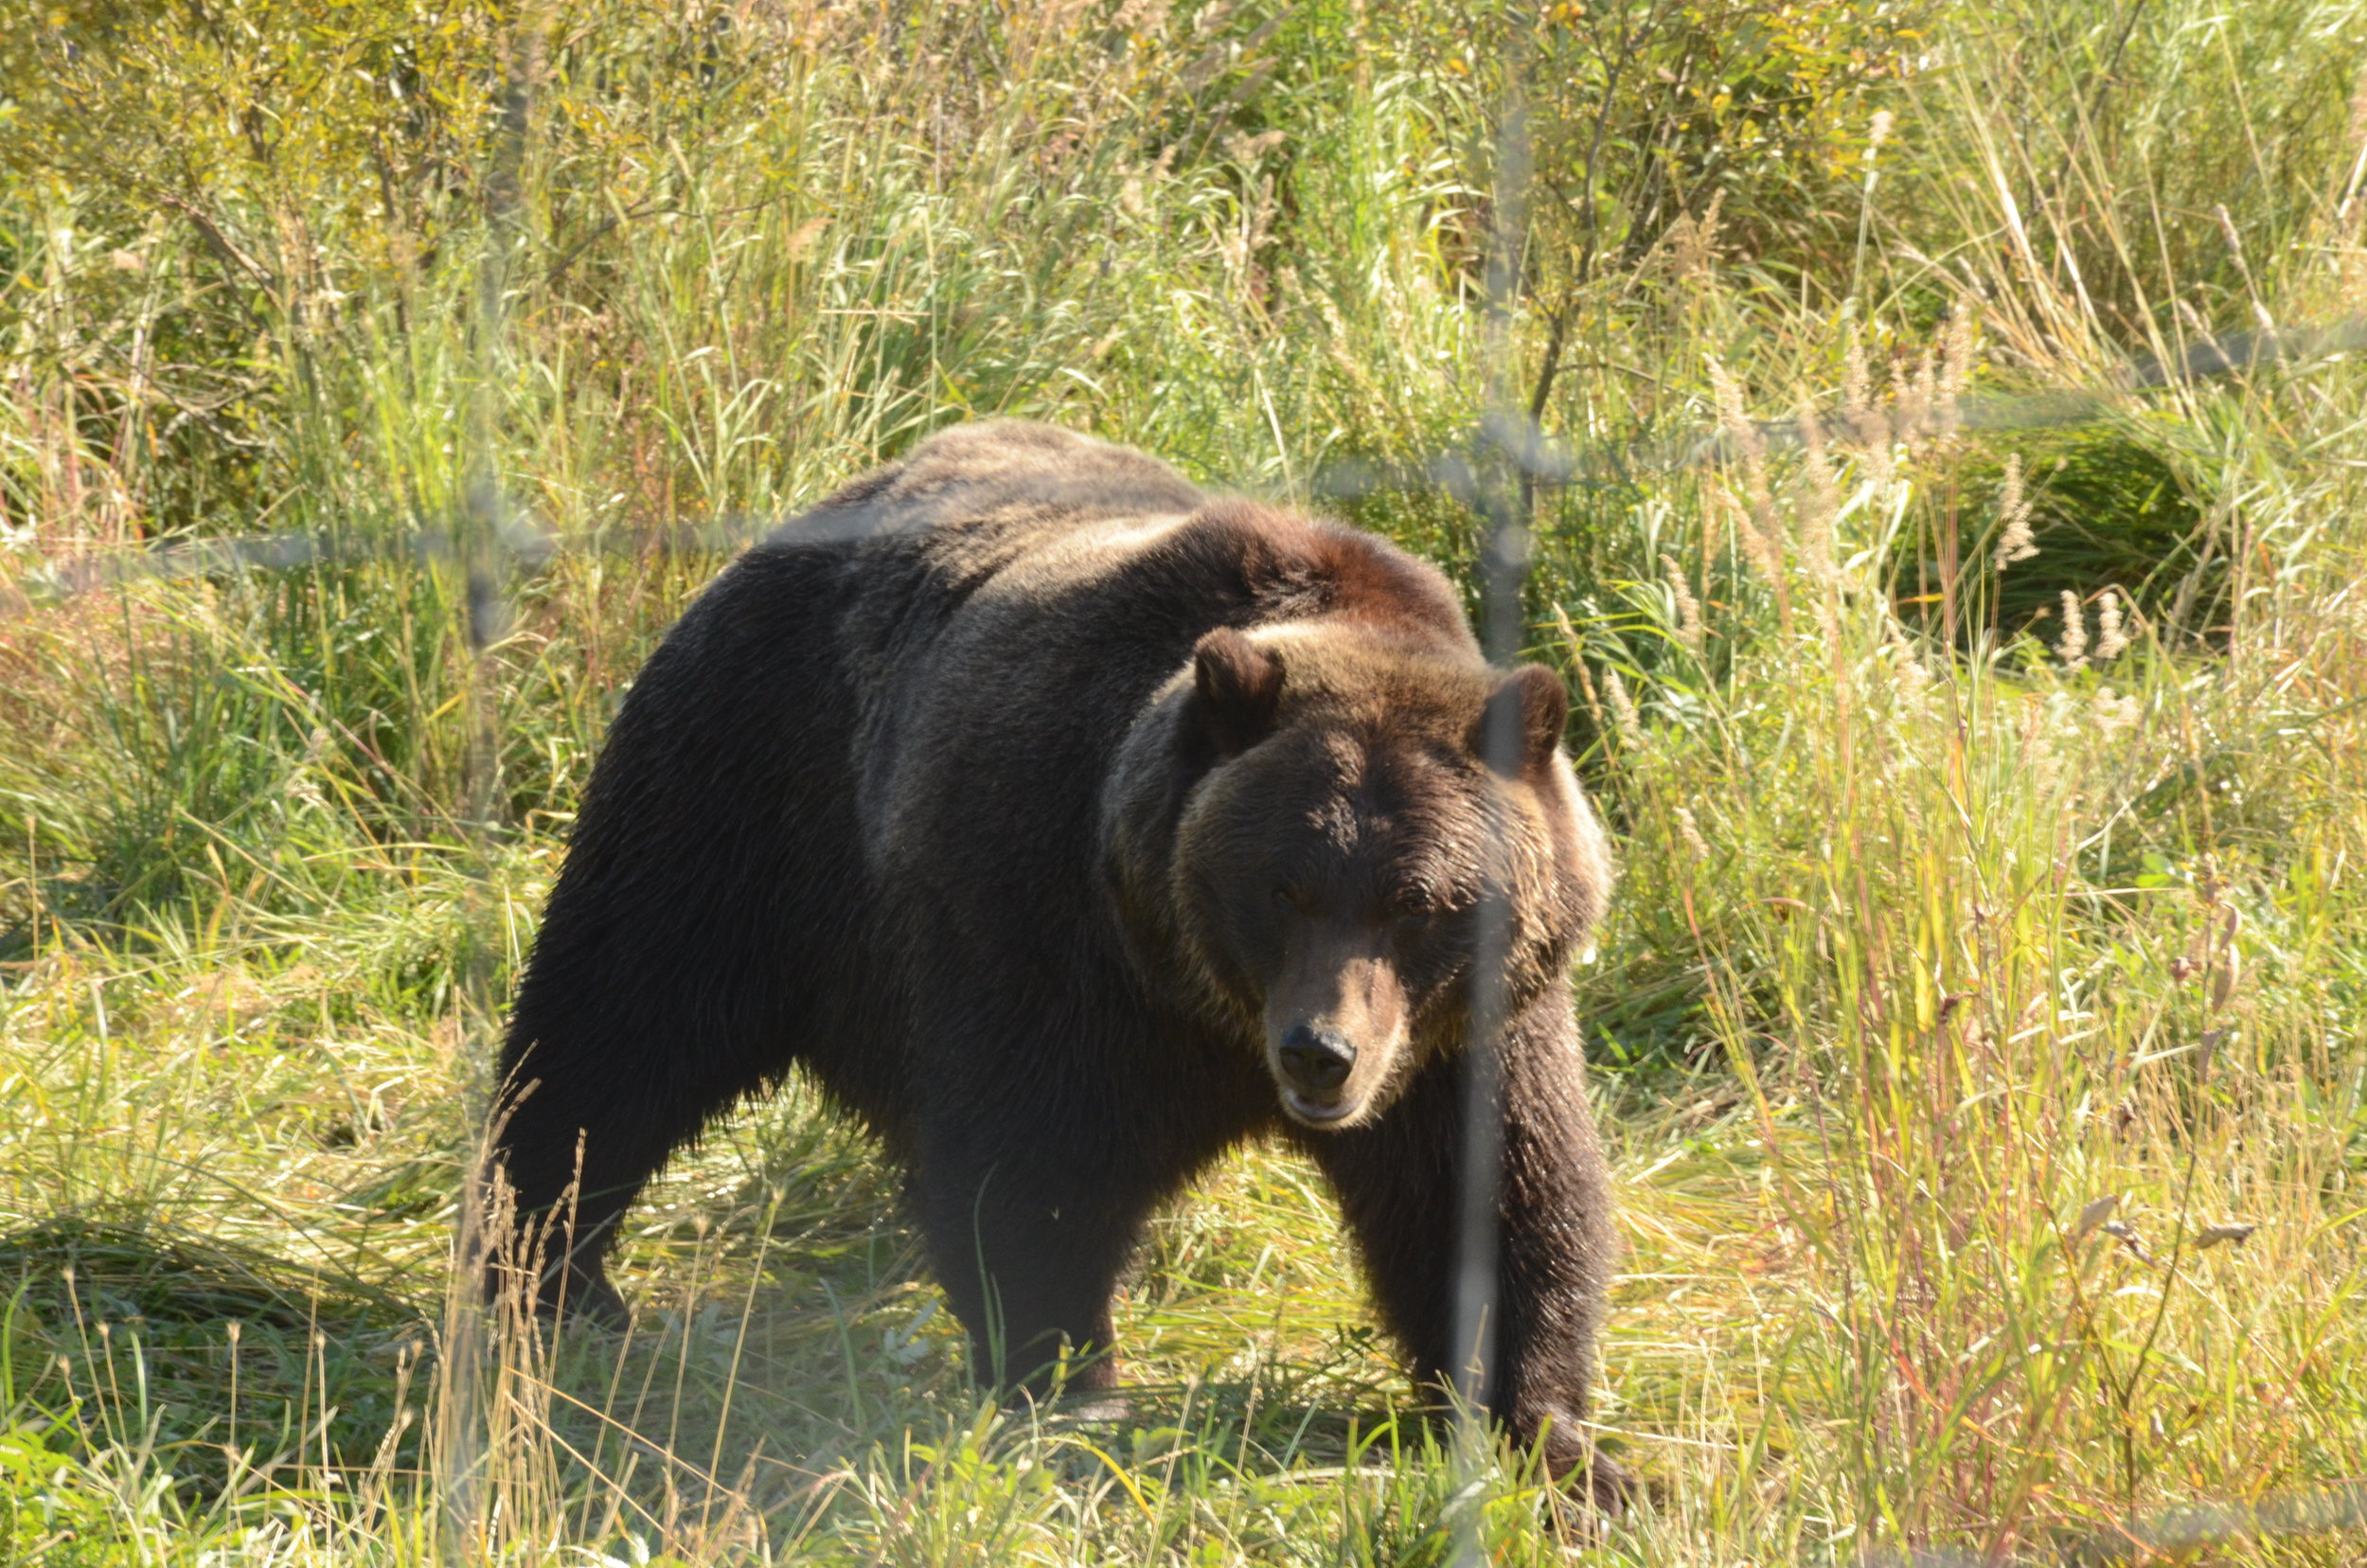 I didn't find this grizzly in the wild, but in a wildlife sanctuary.